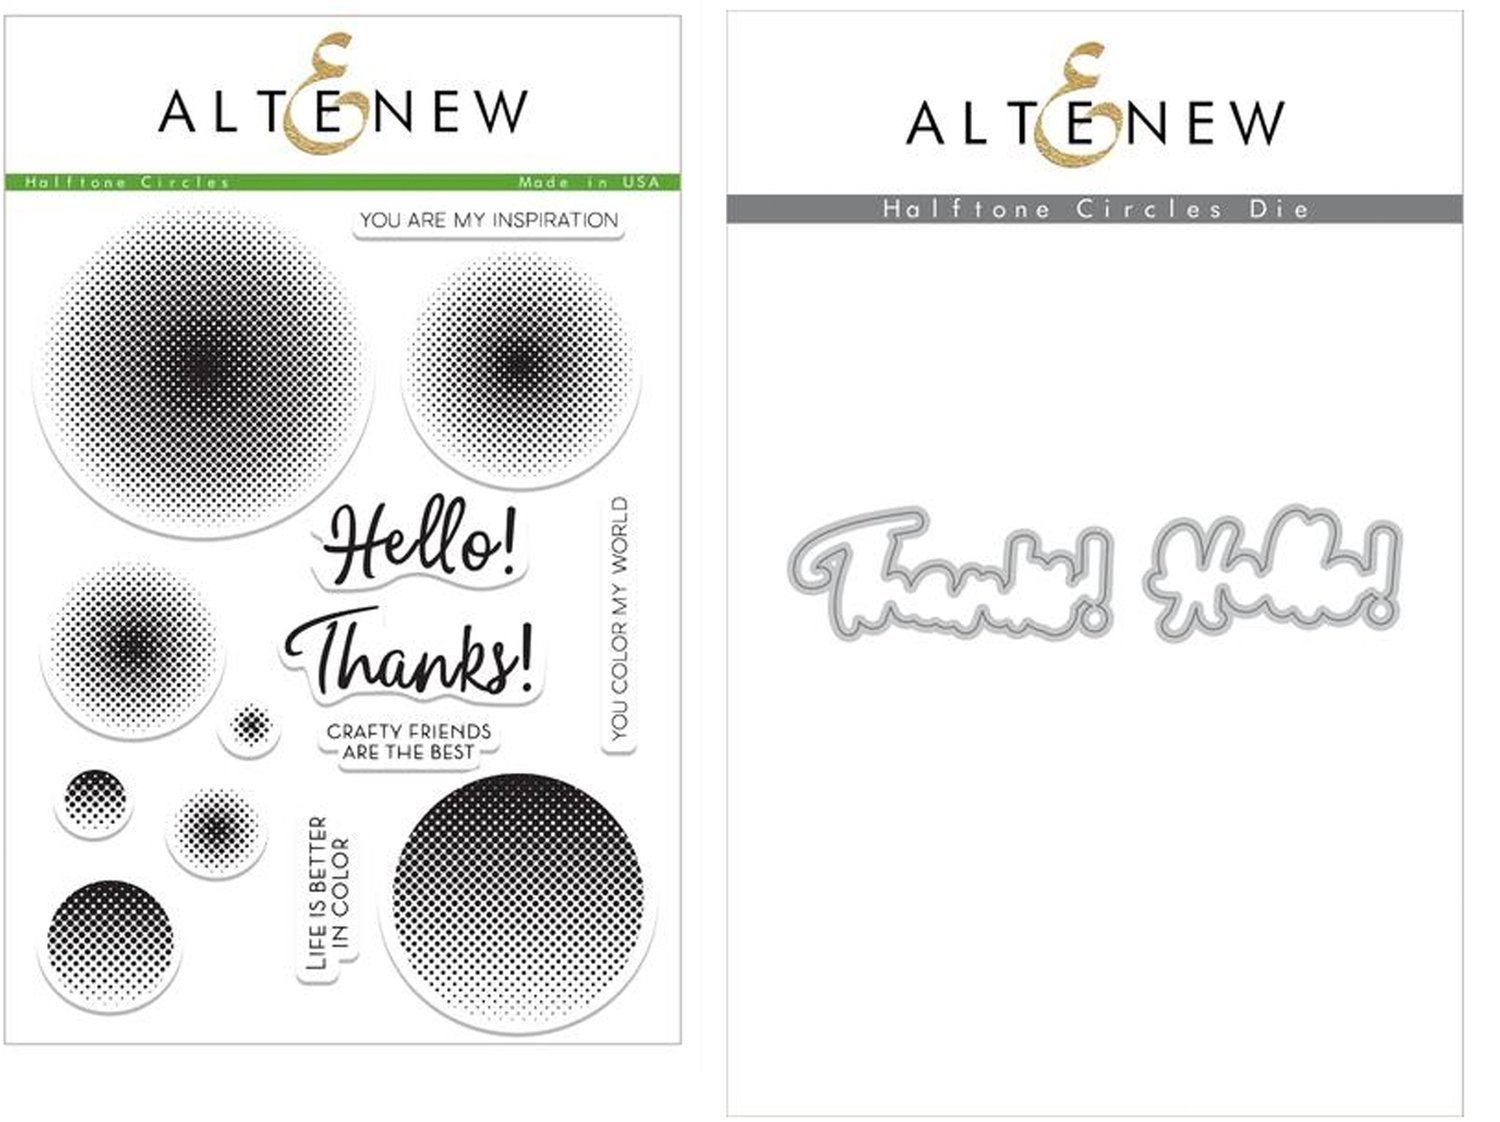 ALTENEW HALFTONE CIRCLE STAMP AND DIE SETS